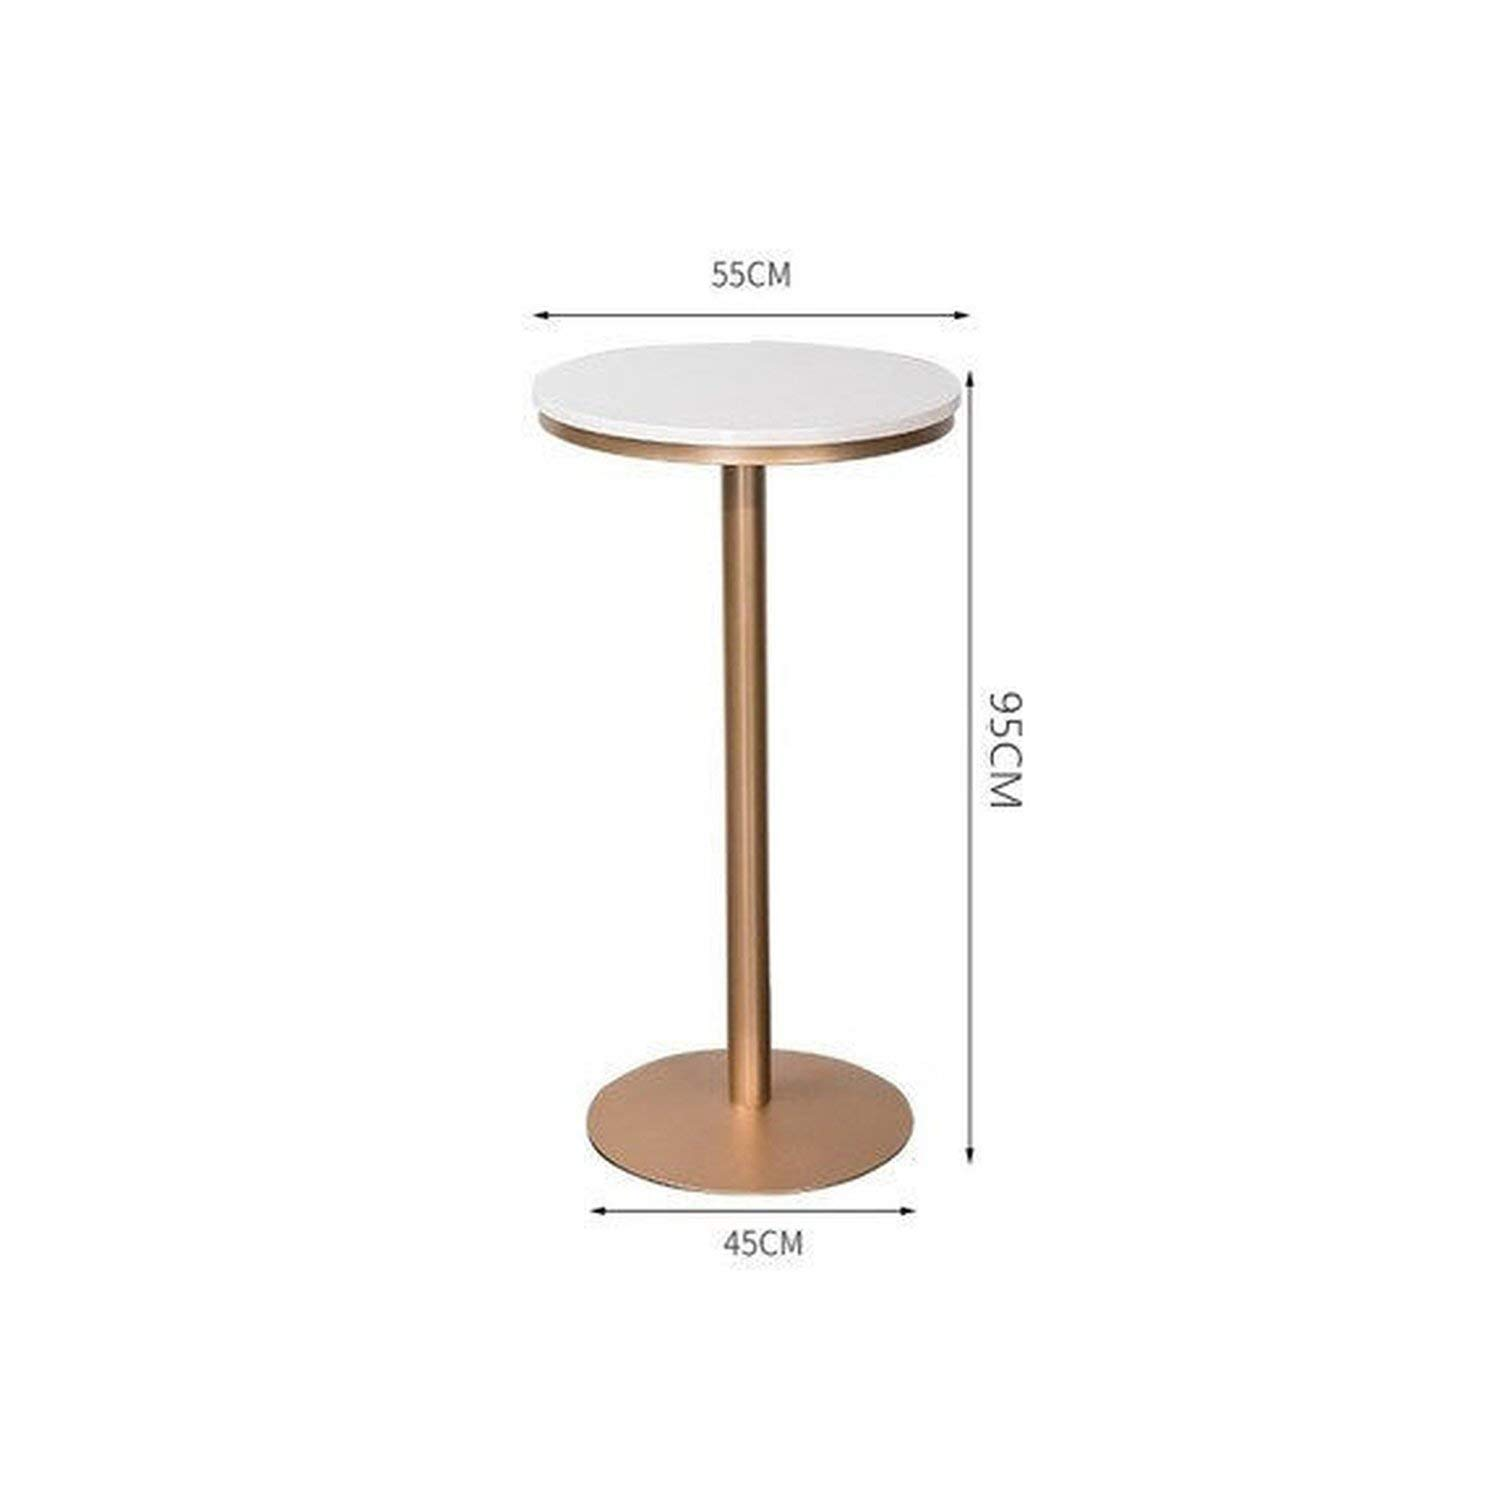 Table-95cm tthappy76 Simple Bar Stool Wrought Iron Bar Chair gold High Stool Modern Dining Chair Iron Leisure Chair Nordic,C-gold-75Cm